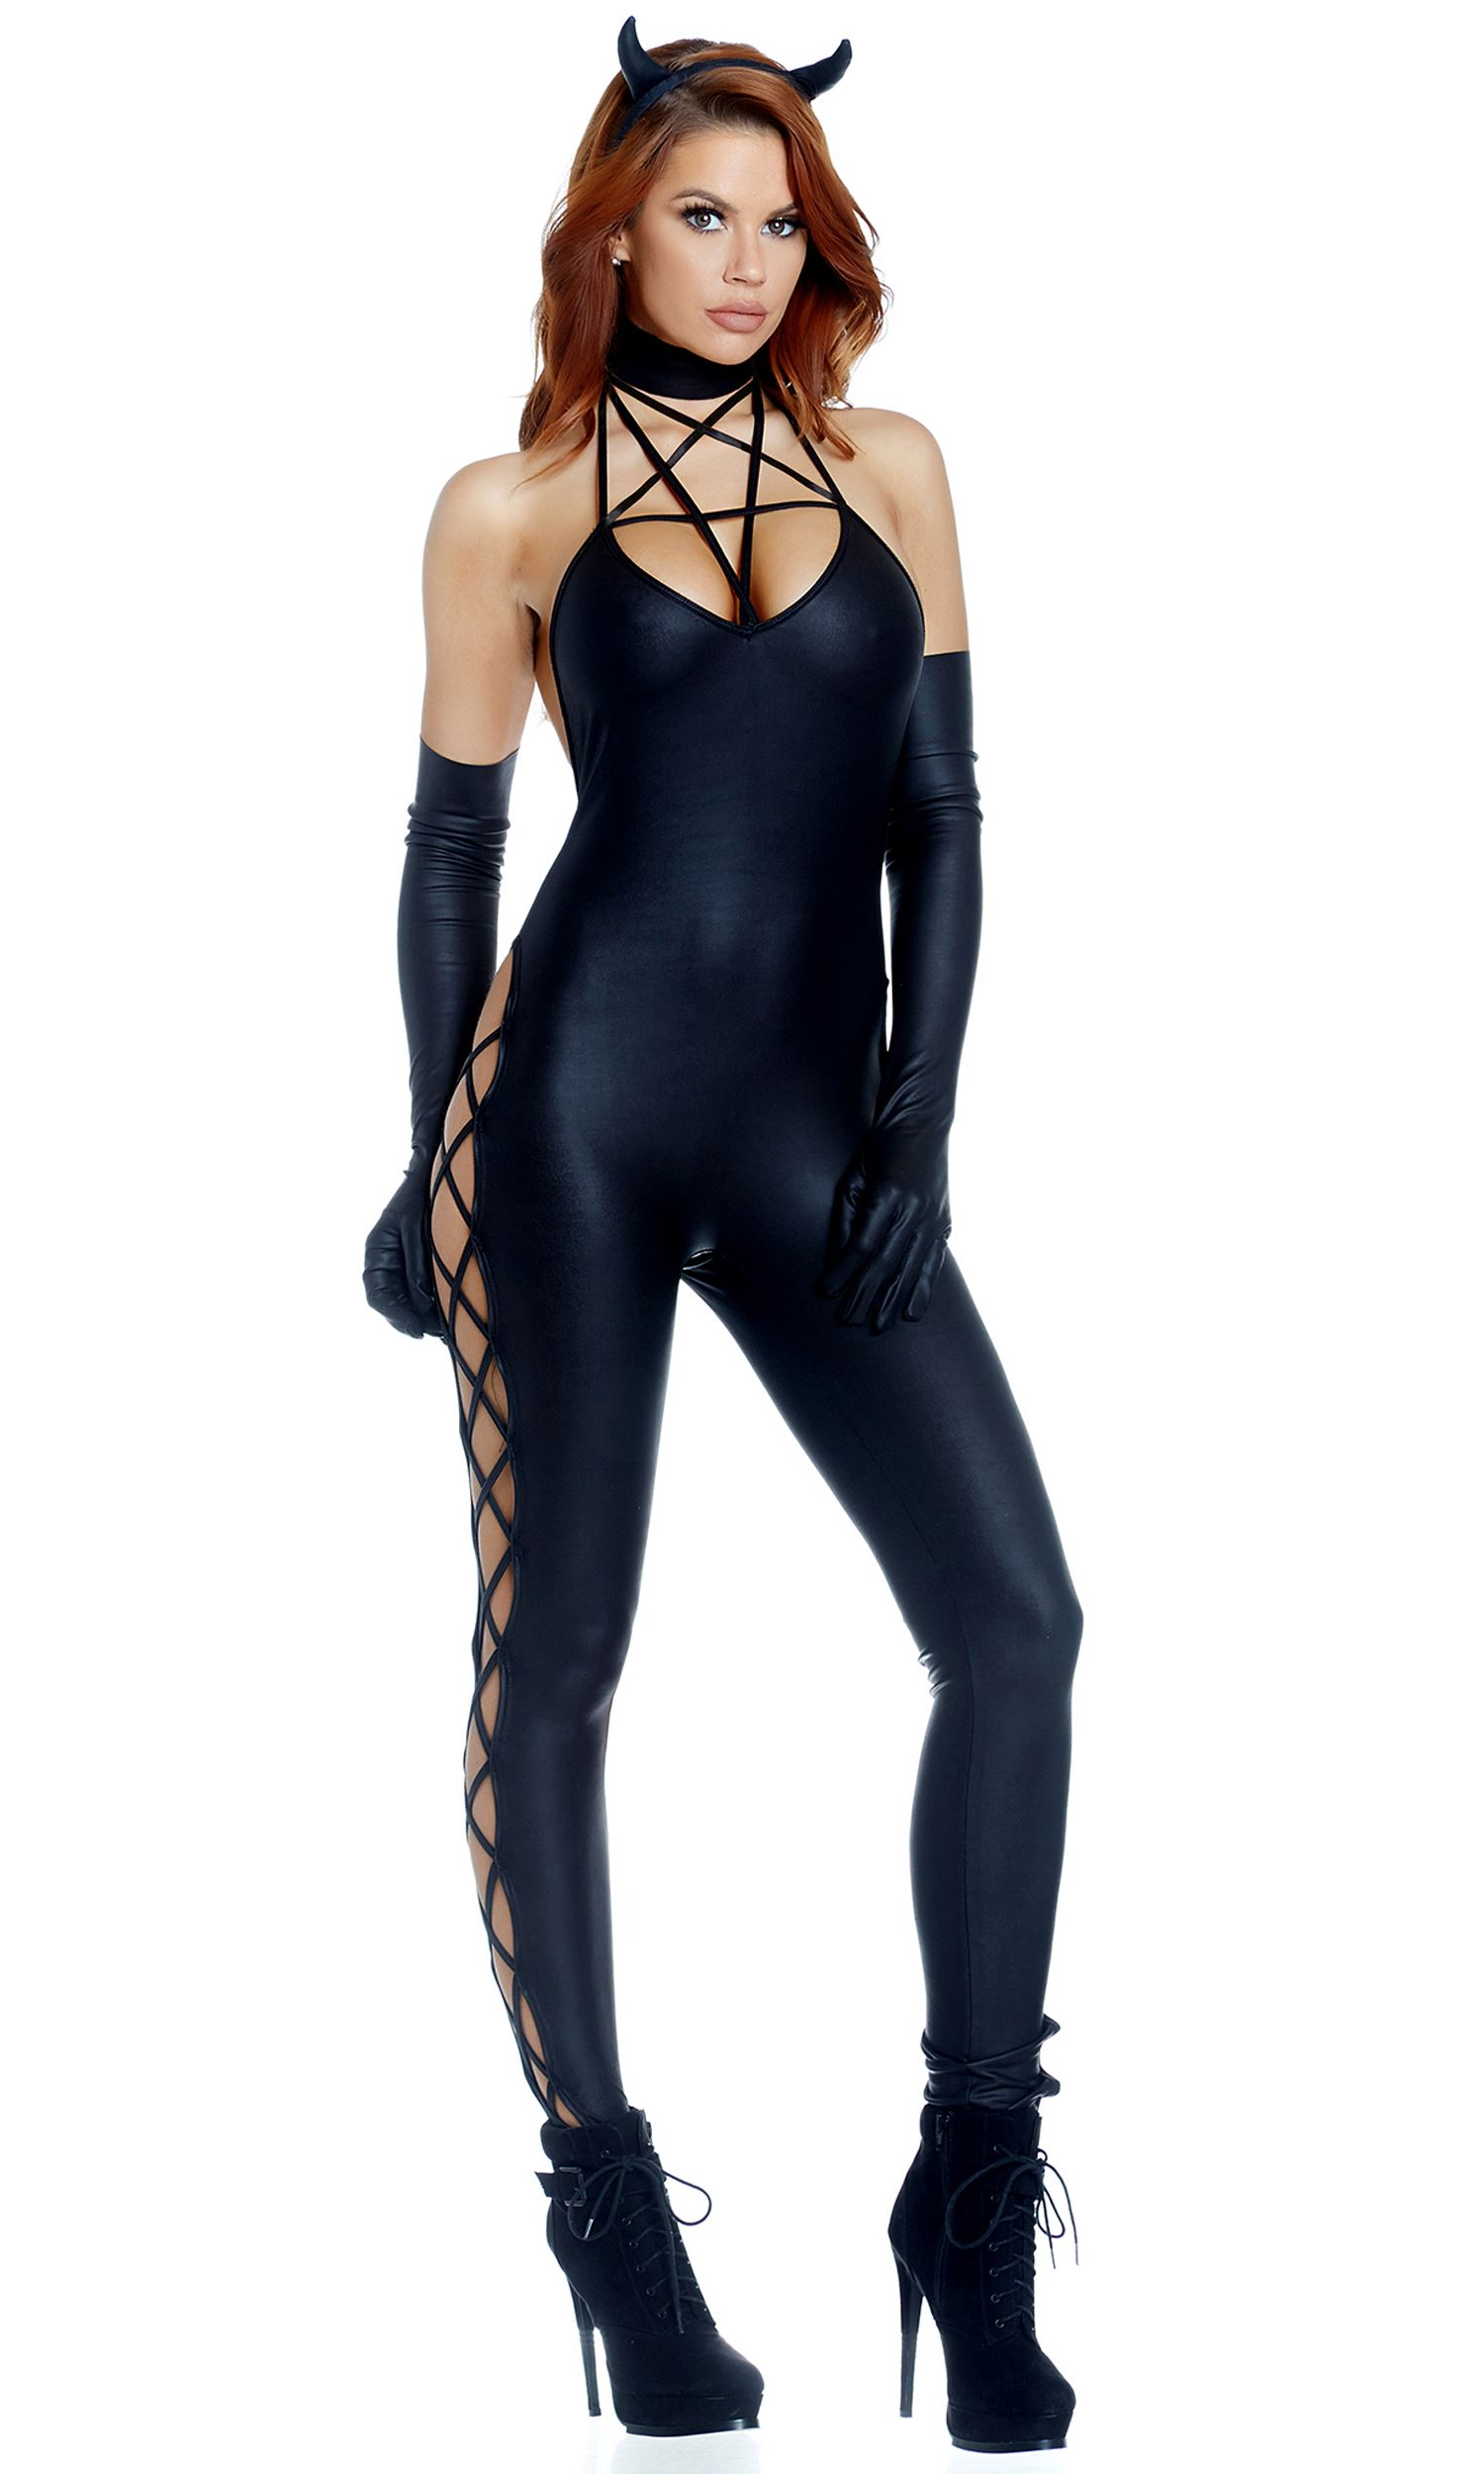 Adult Guilty Pleasure Woman Catsuit Costume ...  sc 1 st  The Costume Land & Adult Guilty Pleasure Woman Catsuit Costume | $59.99 | The Costume Land